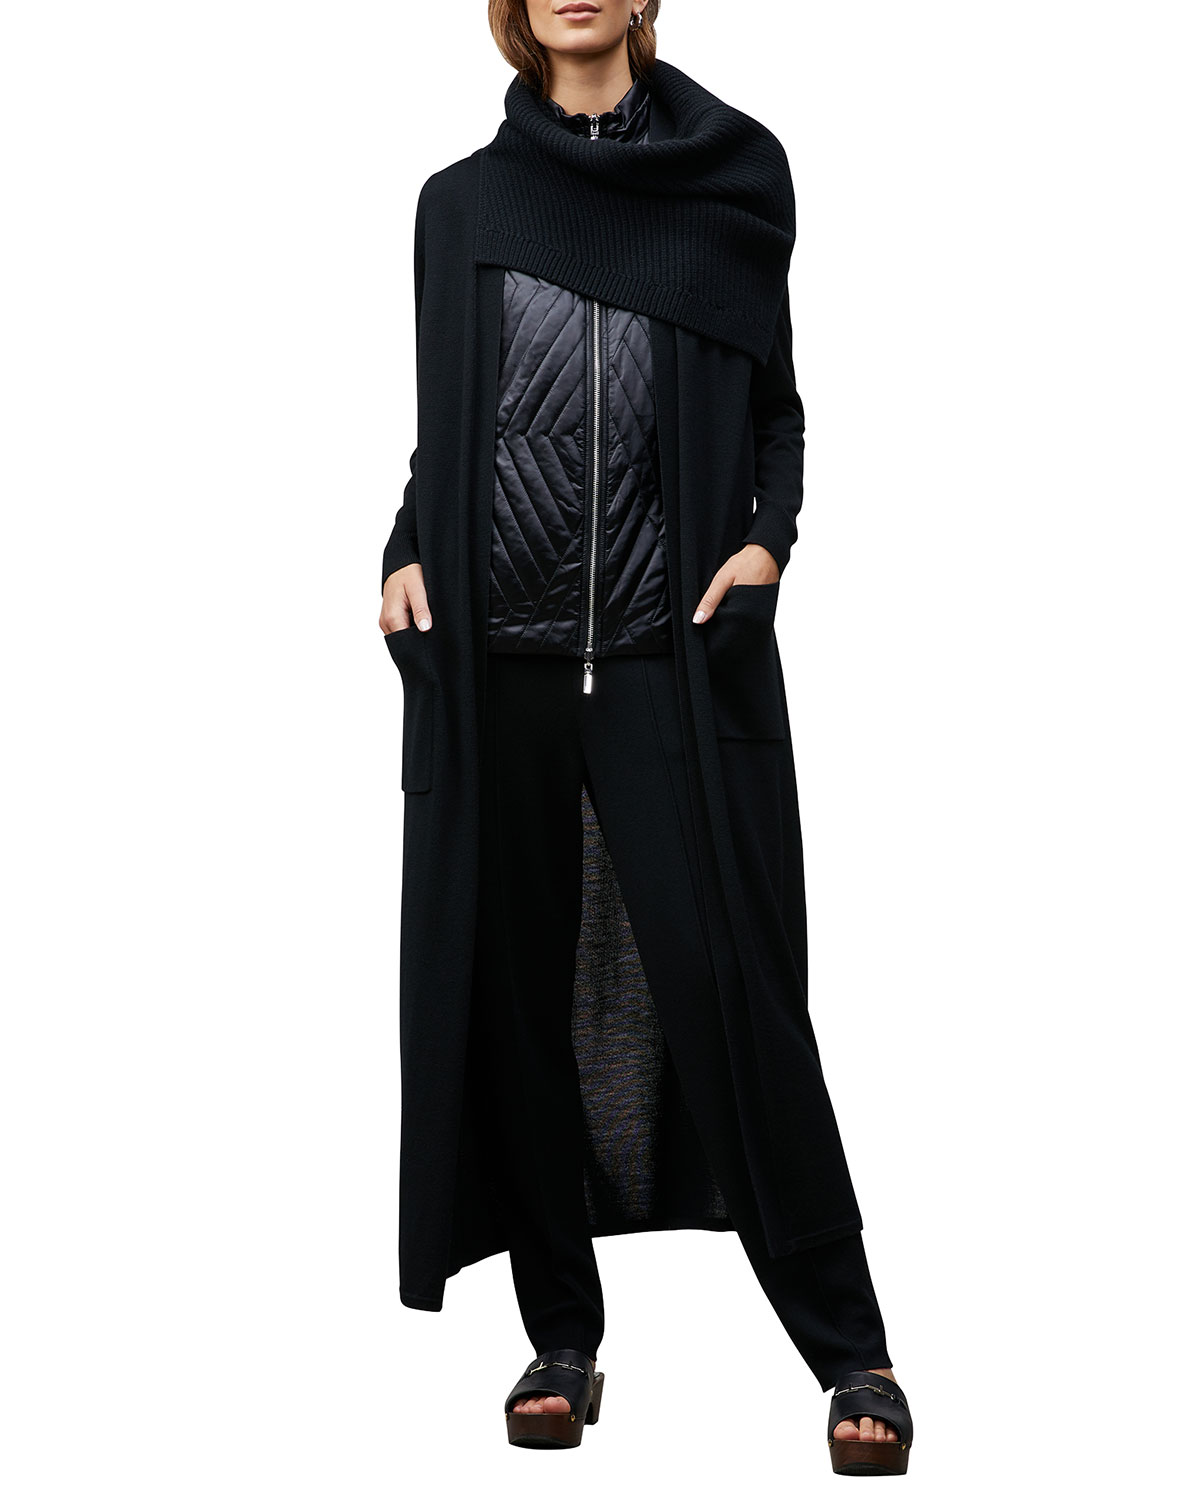 Lafayette 148 BELTED LONG CARDIGAN WITH POCKETS